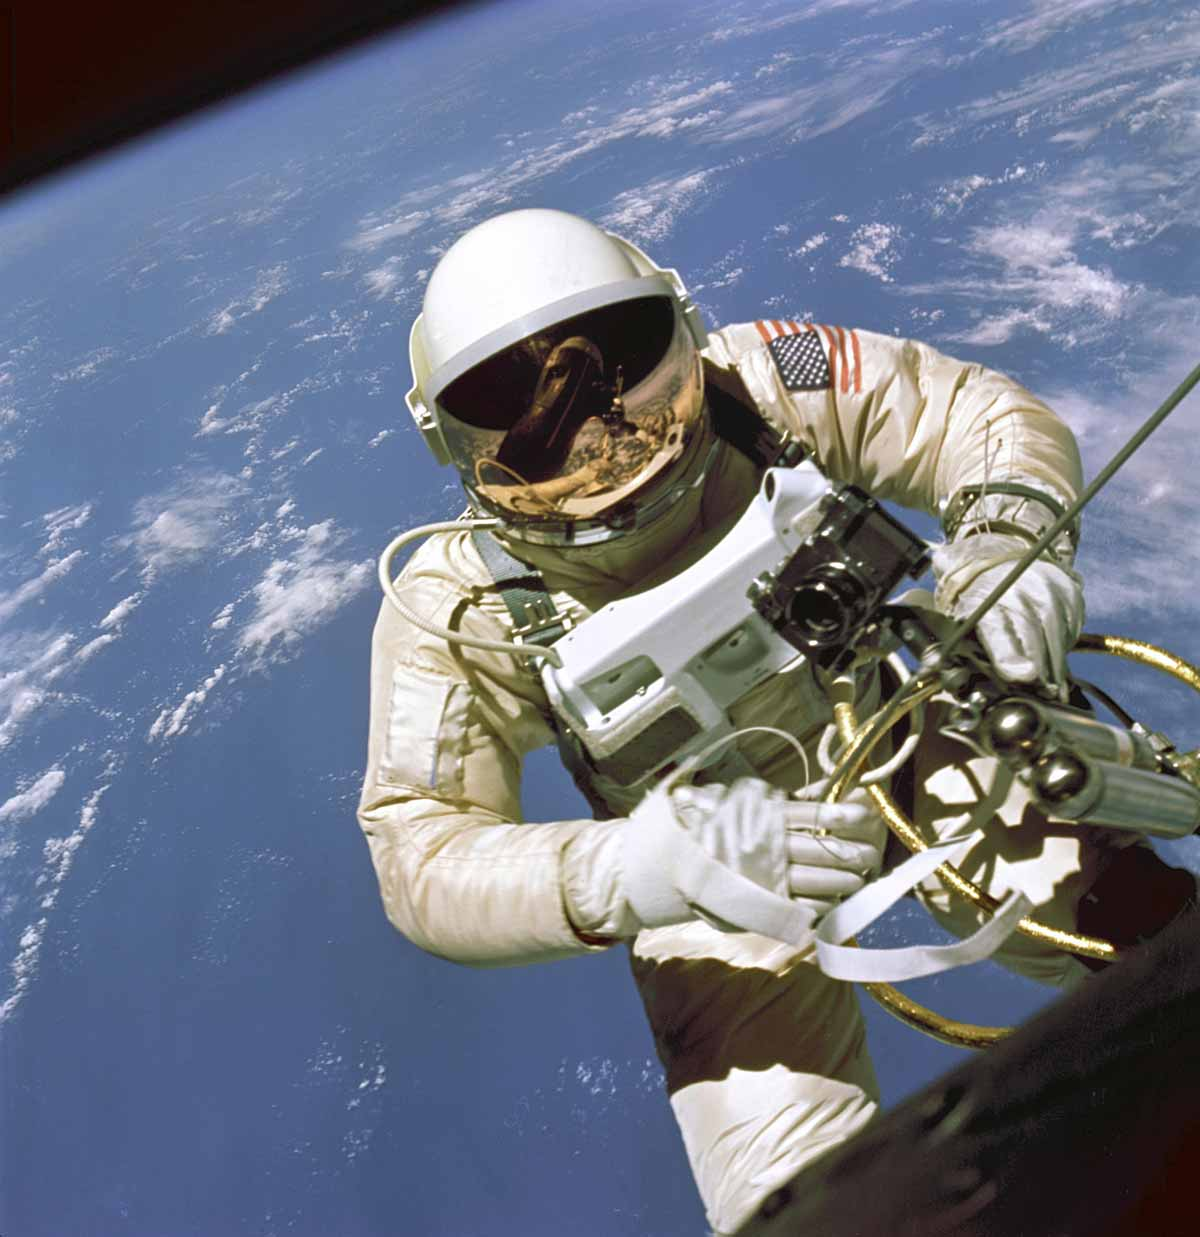 Ed White on his historic spacewalk. Image in the public domain.